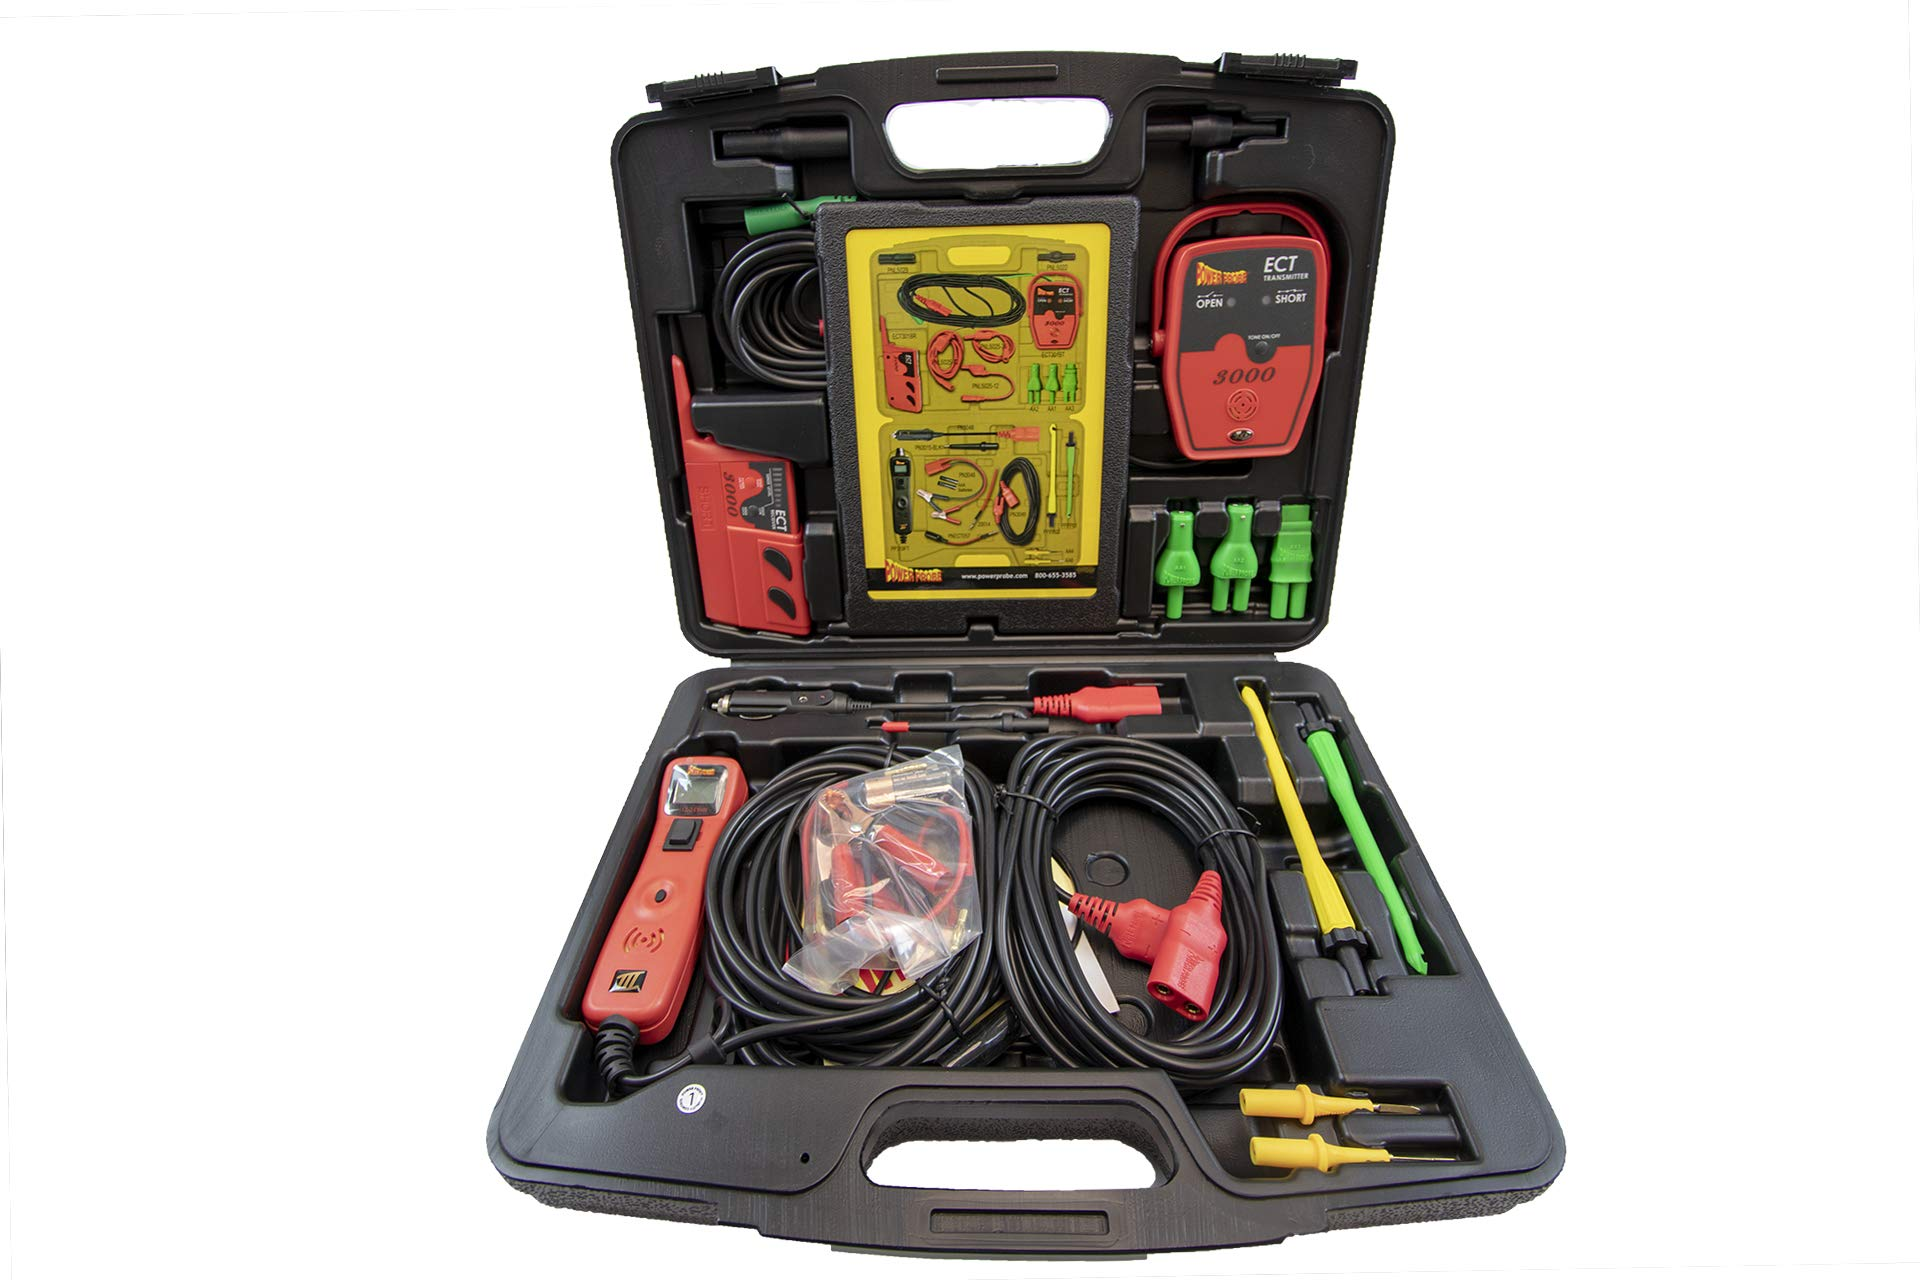 Diesel Laptops Power Probe 3 (III) Master Combo Kit with 12-Months of Truck Fault Codes by Diesel Laptops (Image #4)